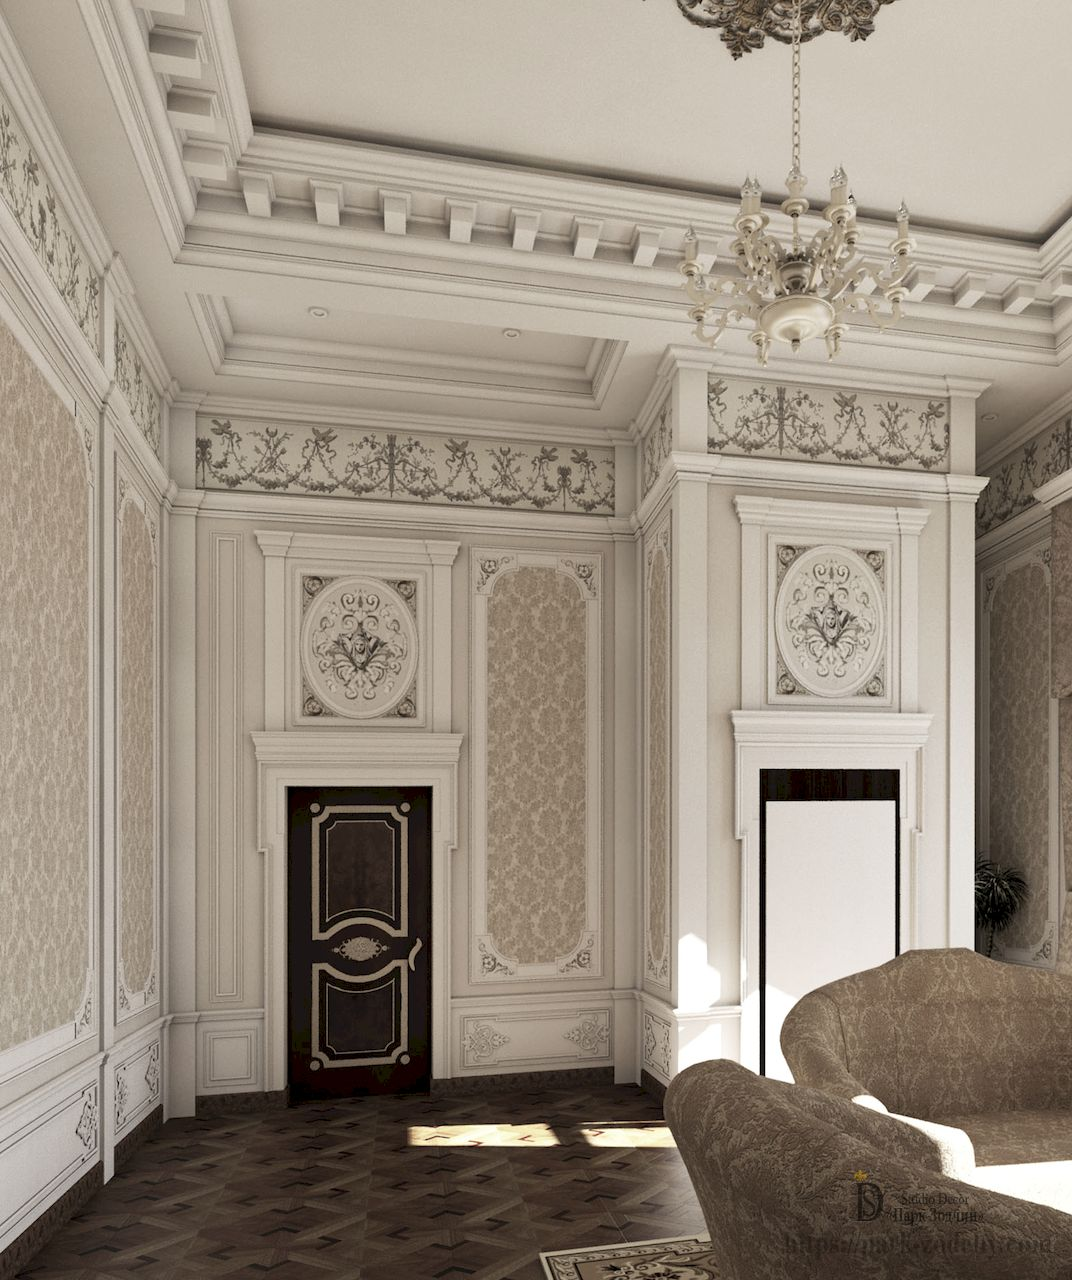 Implemented project of decorating a living room in Empire style